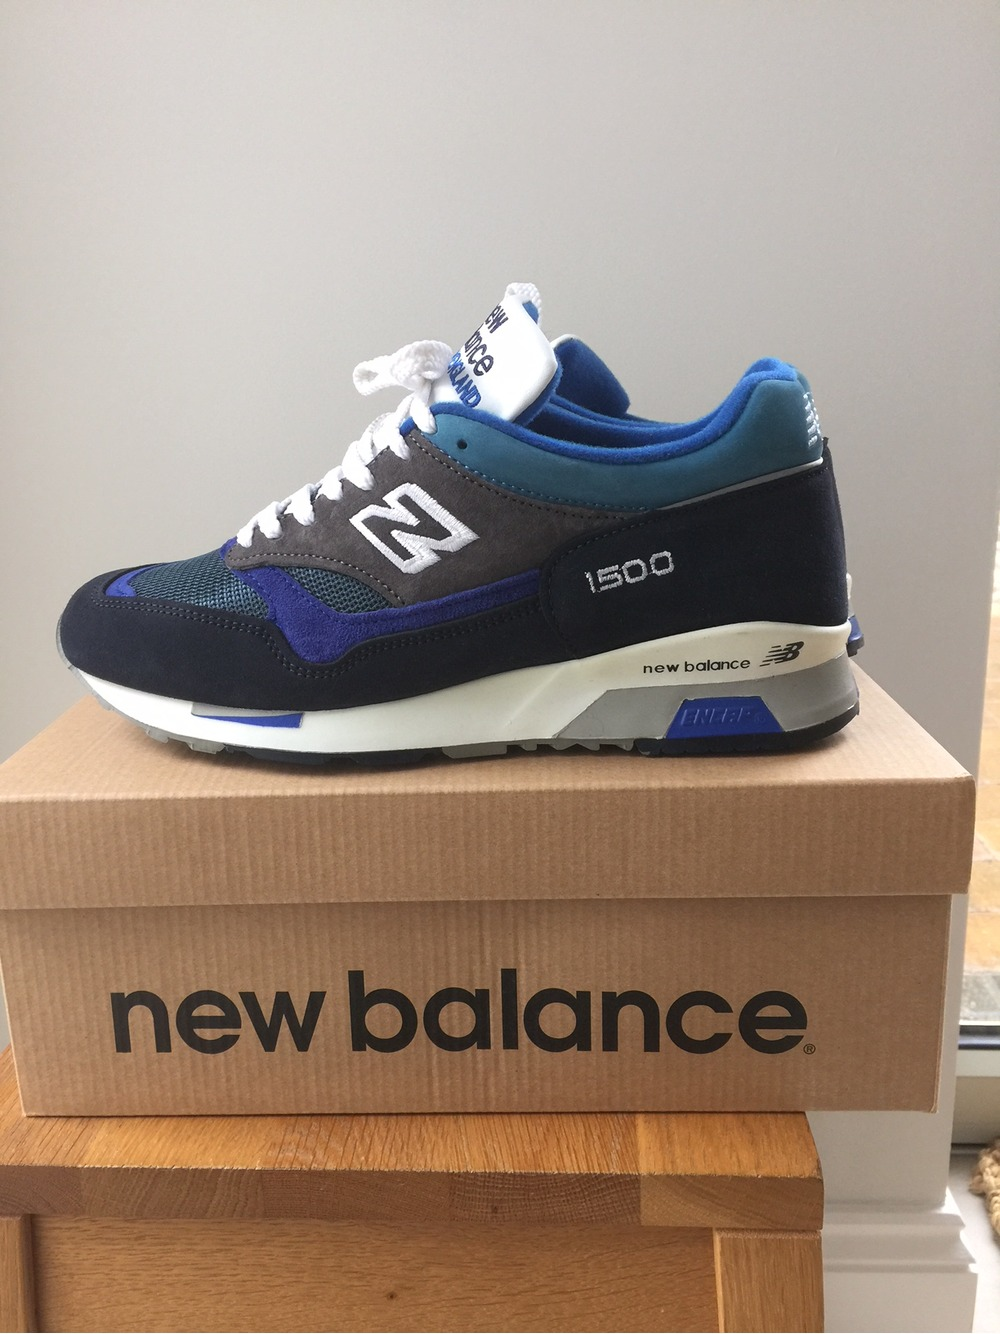 super popular 229d0 84935 new balance 1500 hanon